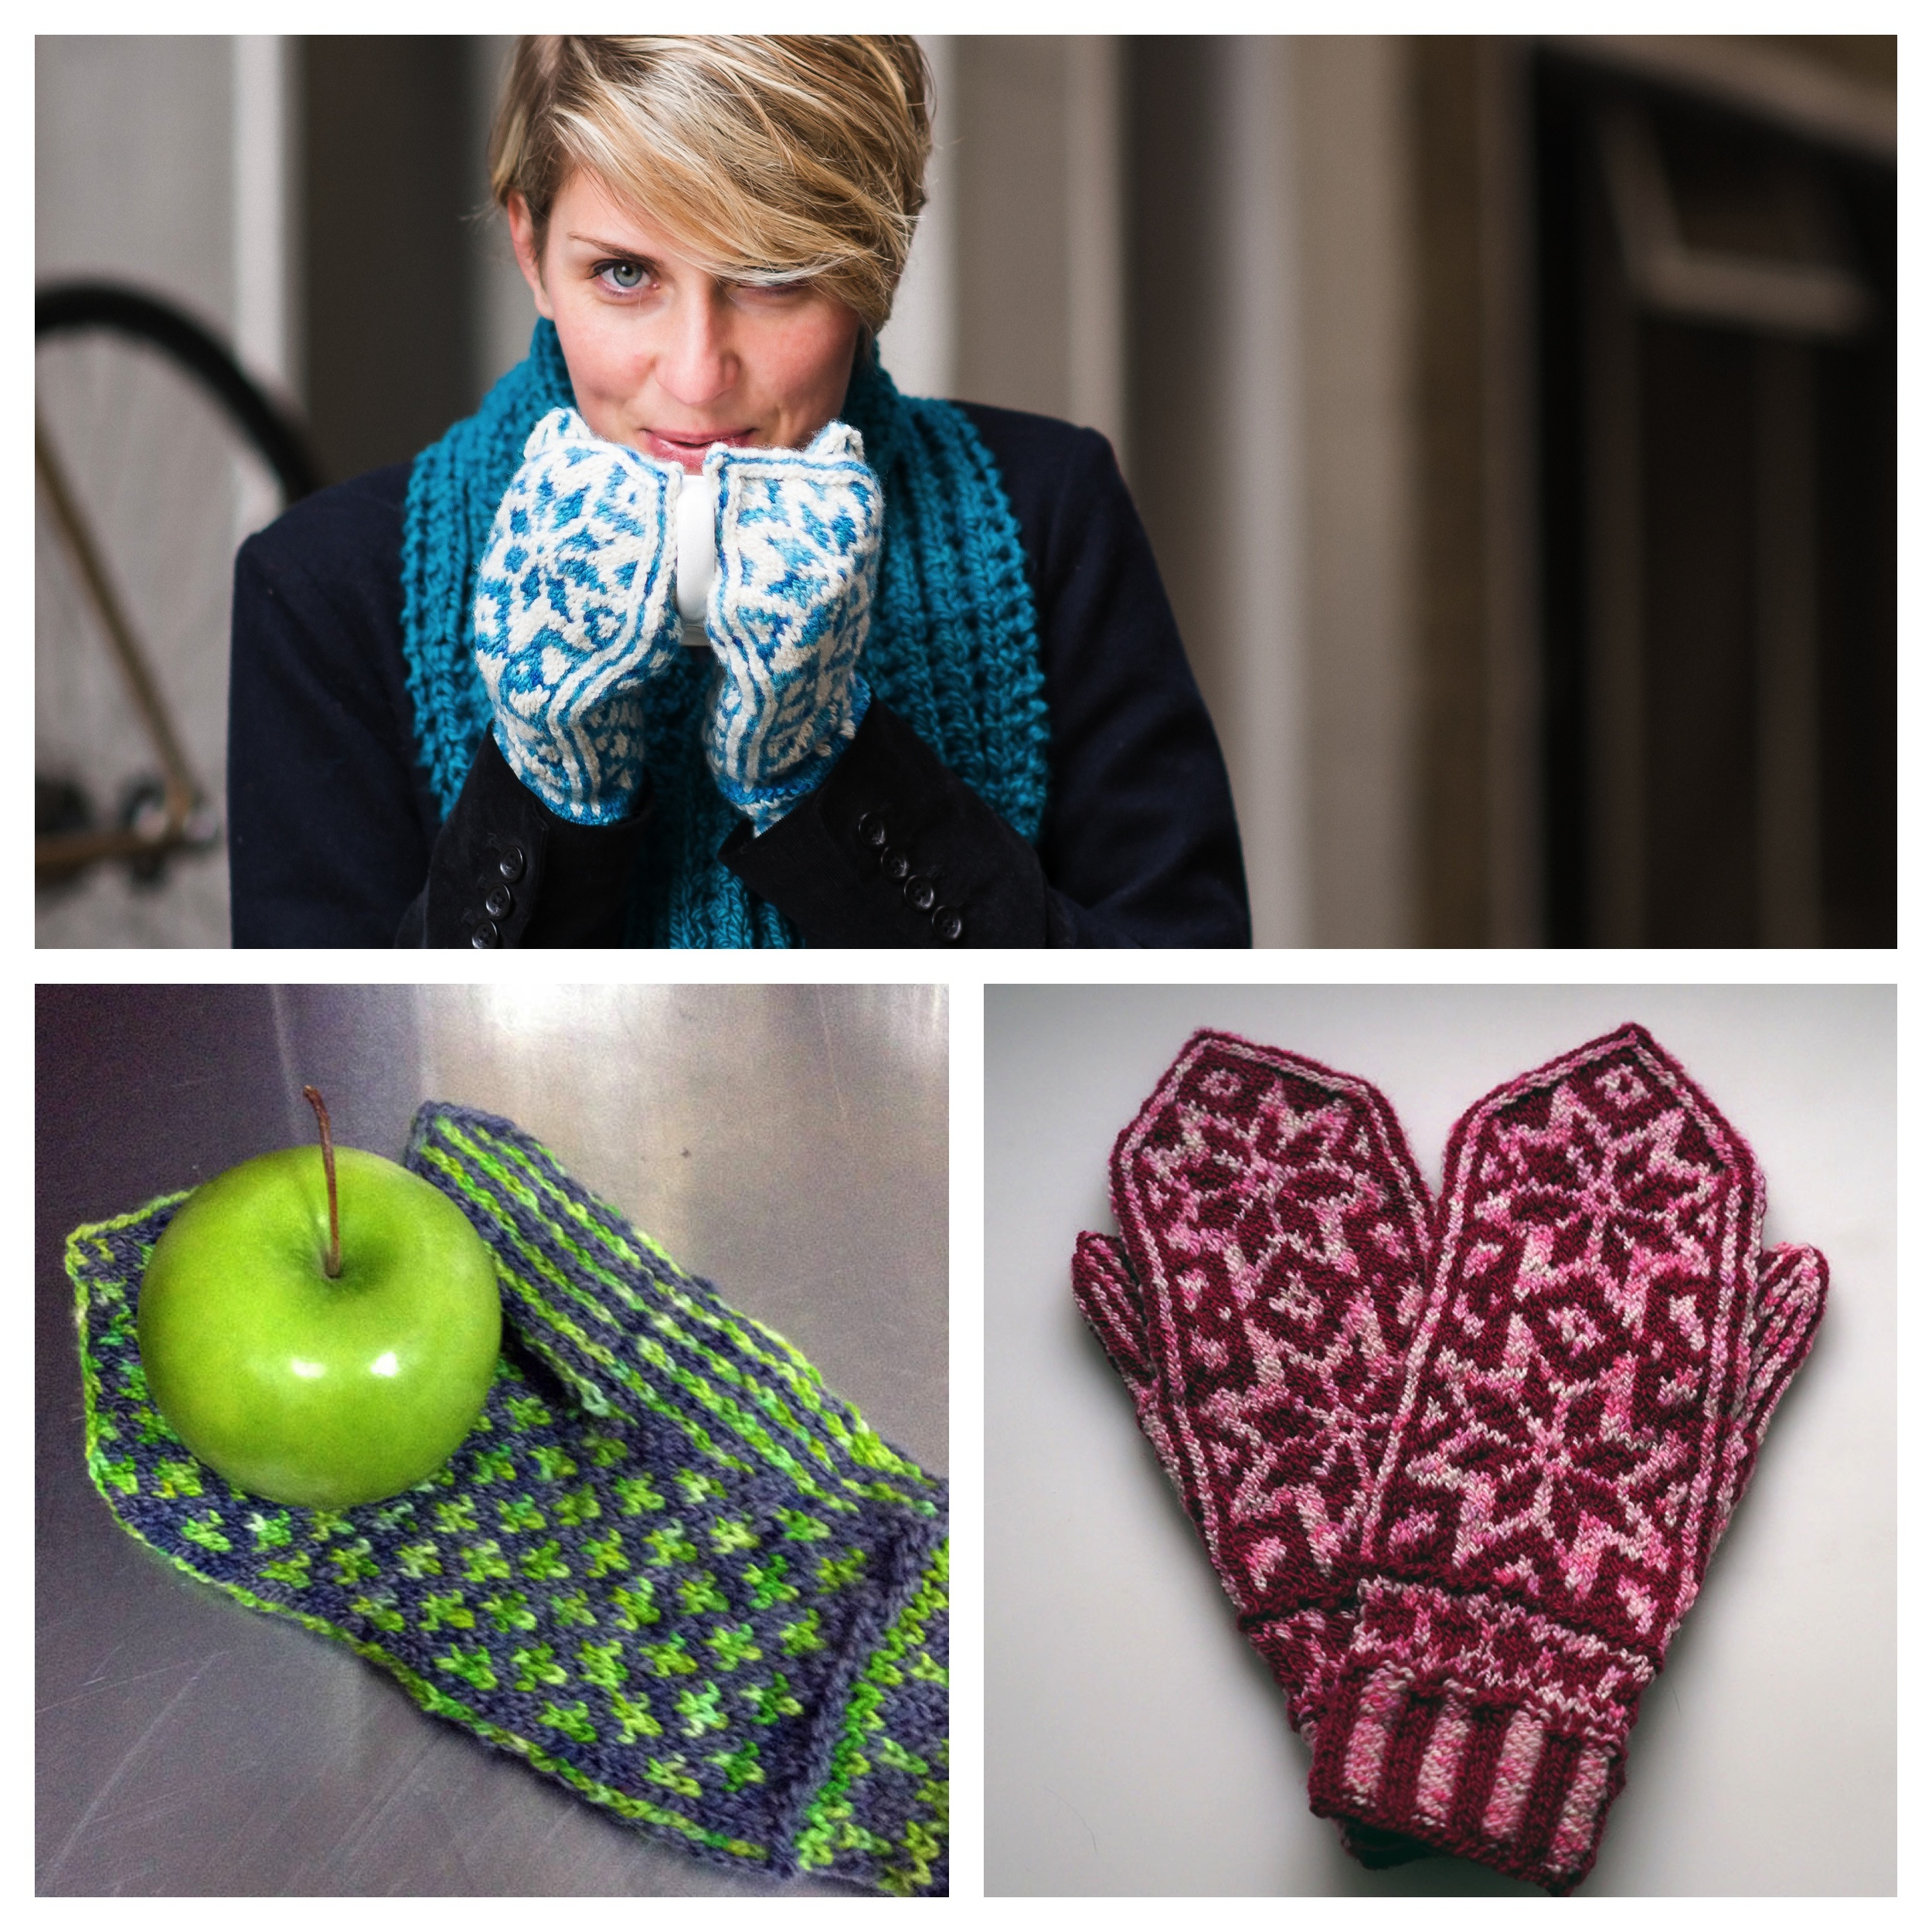 Snowflower Mittens by Cate Carter-Evans and Caitlin Shrigley